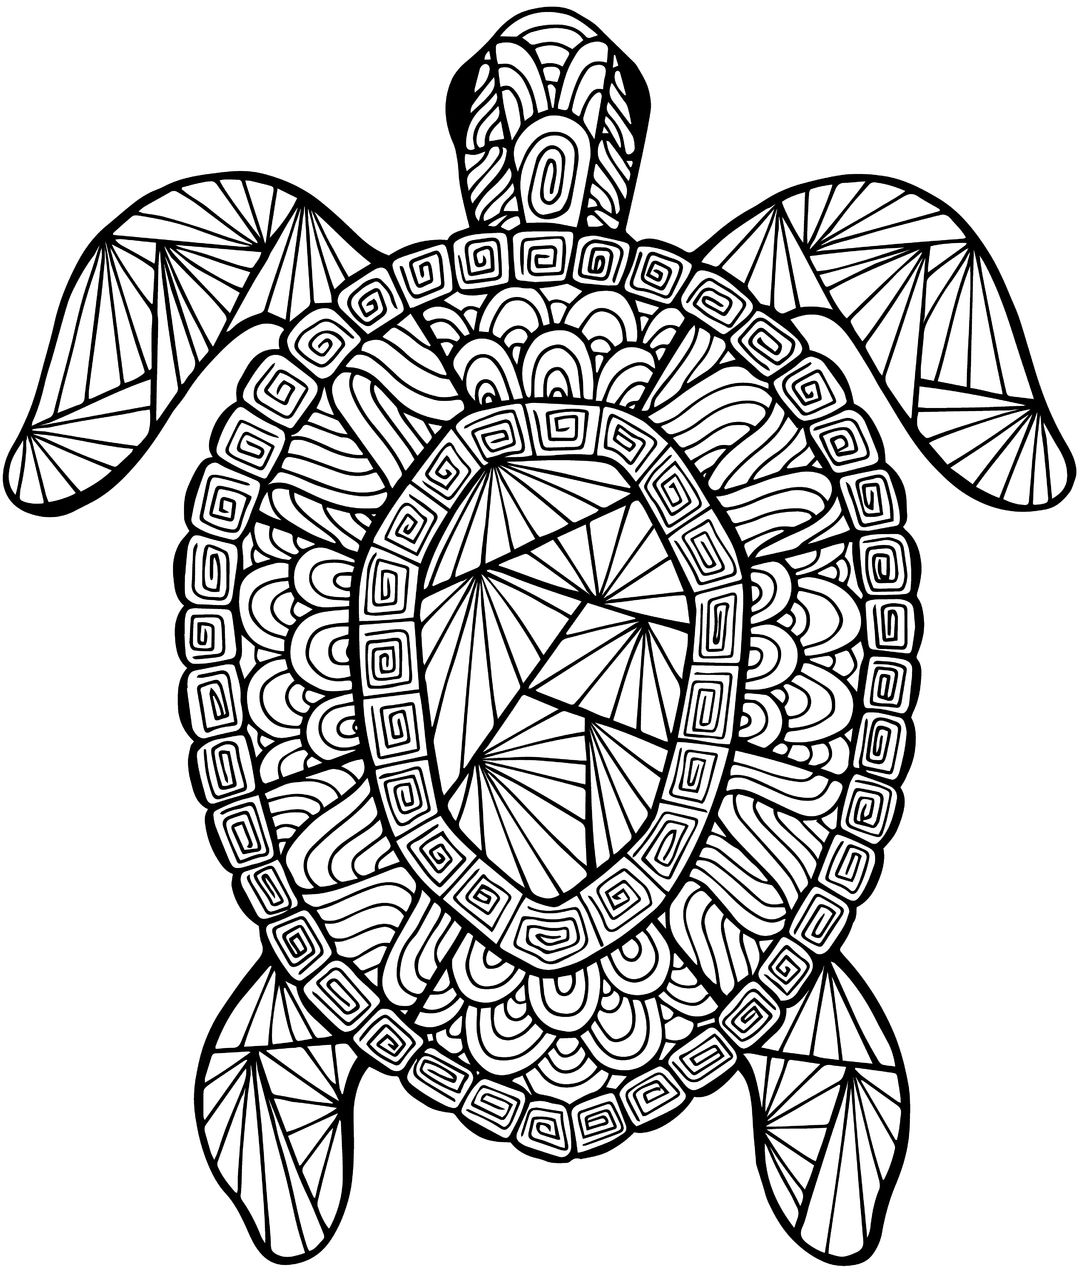 Detailed Sea Turtle Advanced Coloring Page | A to Z ...Detailed Mandala Coloring Pages For Adults